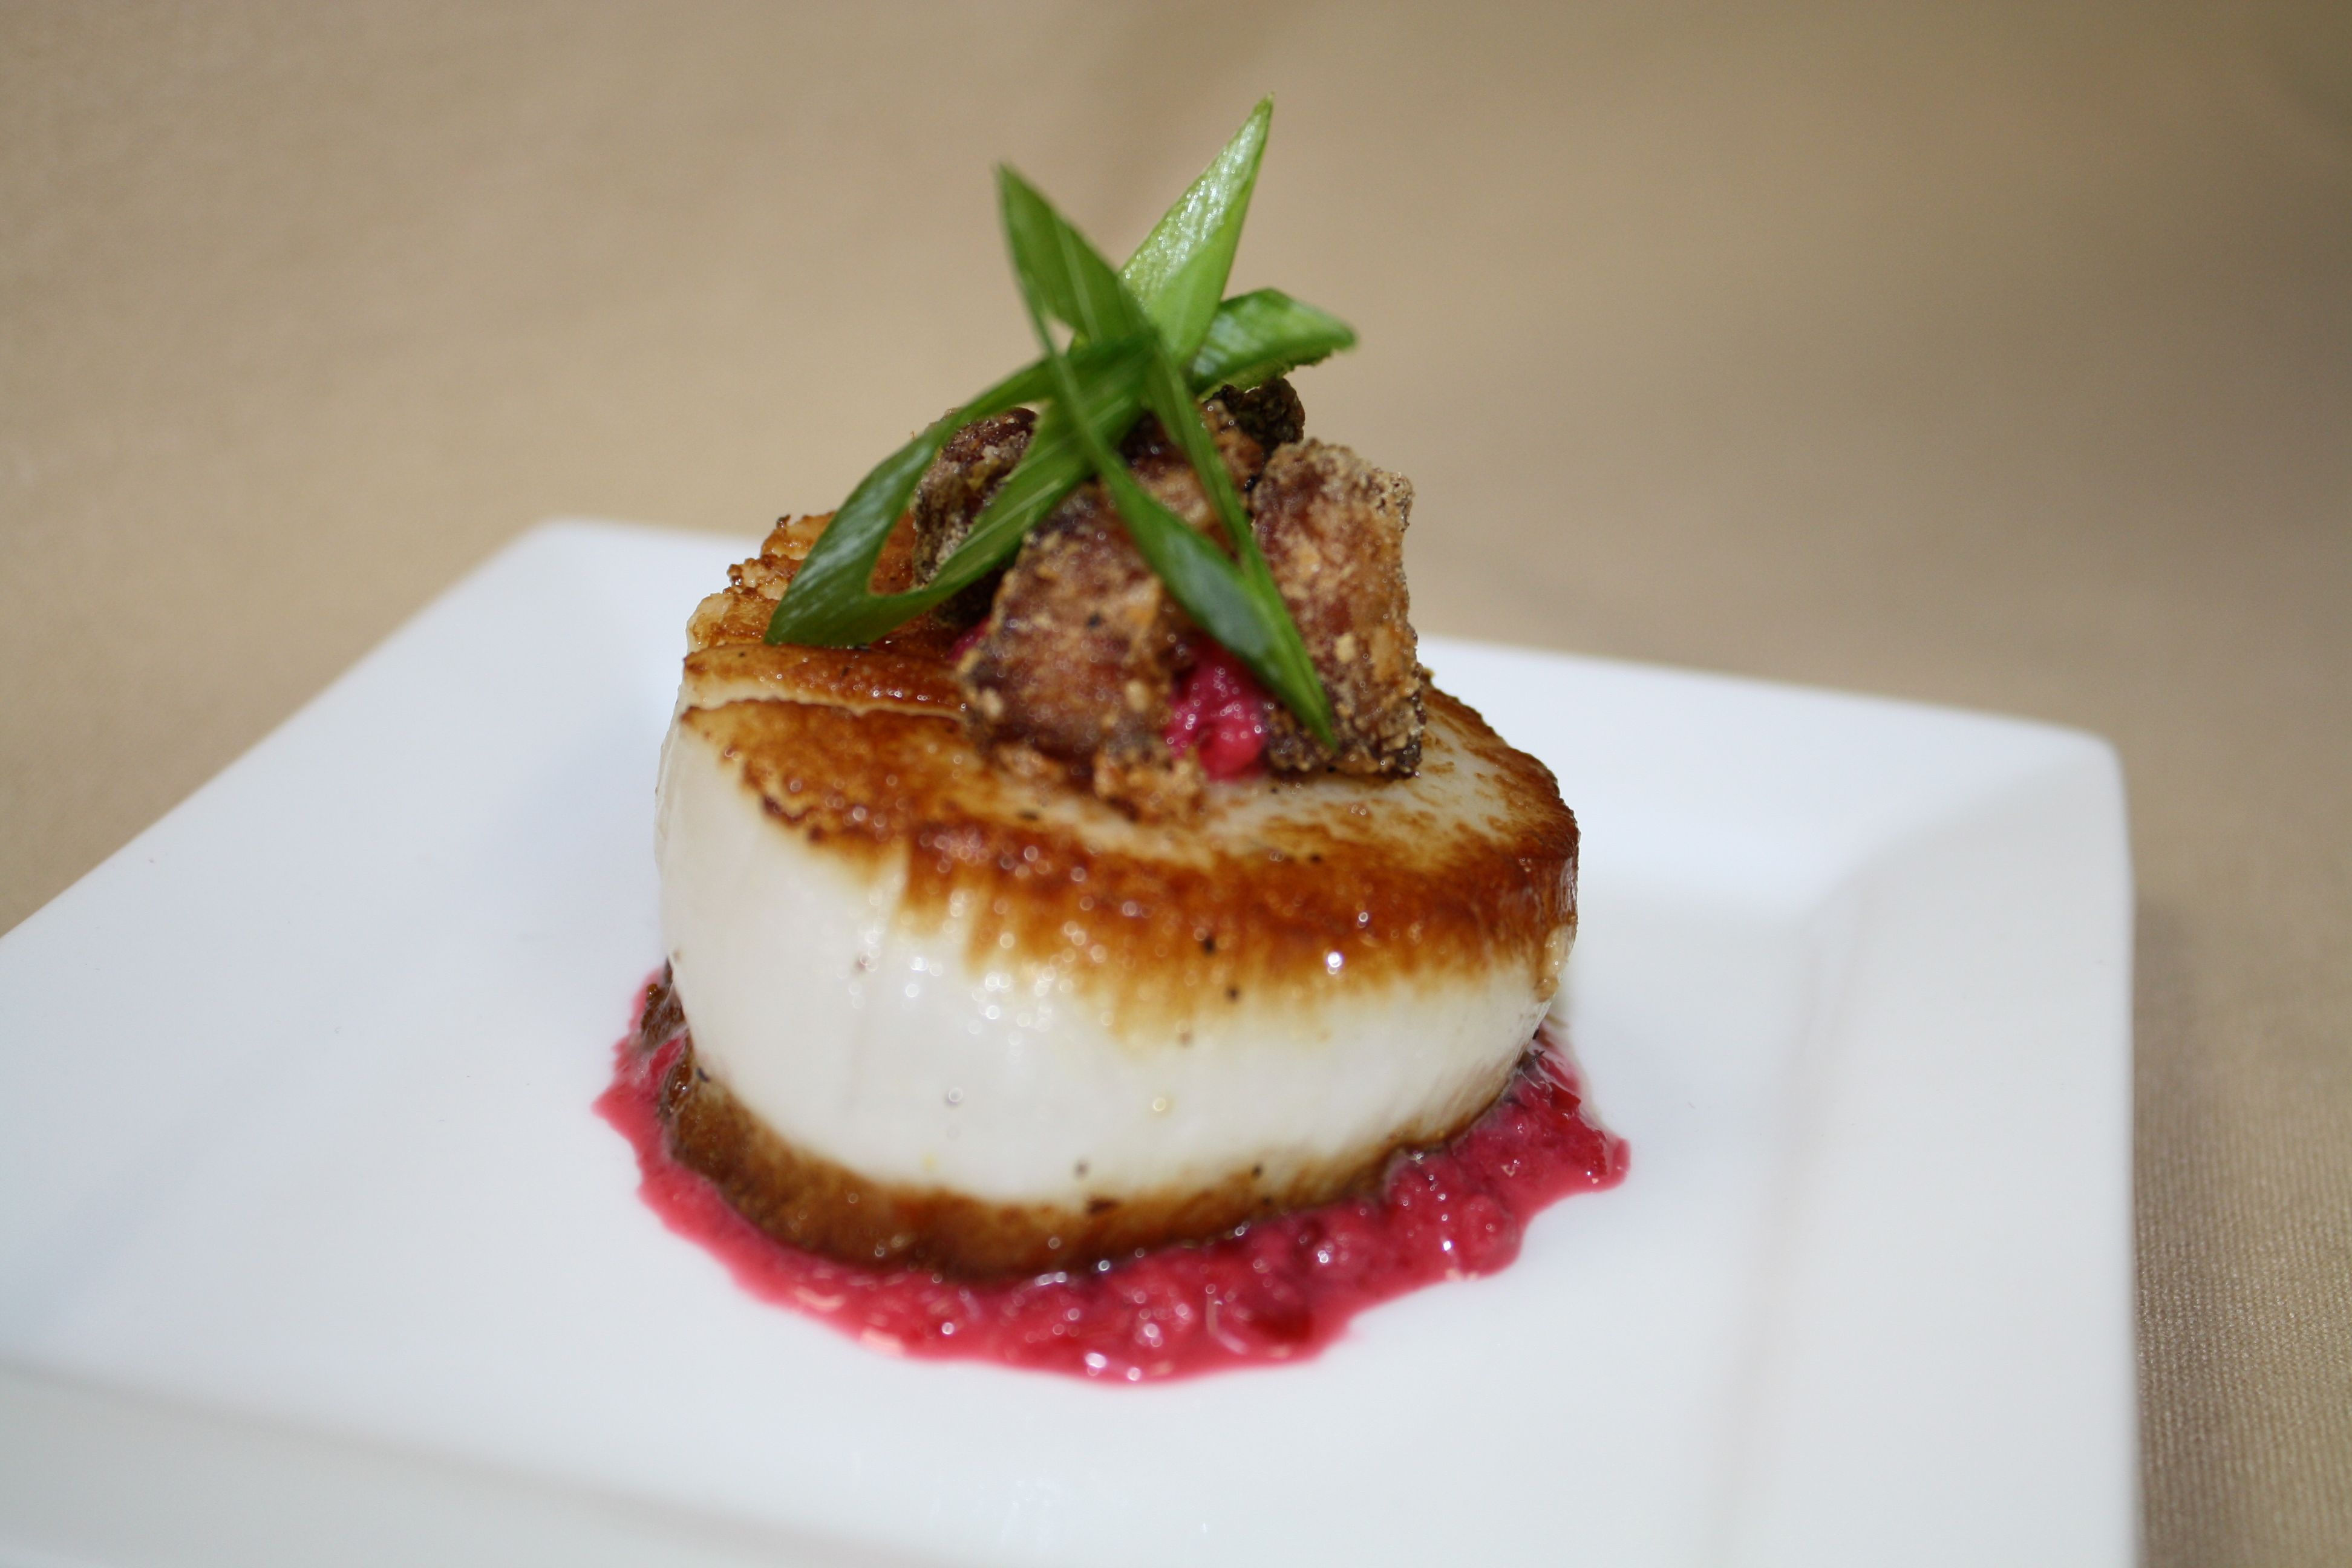 Pan Seared Sashimi Grade Sea Scallops in a pool of orange cranberry puree, topped with fried pork belly and green onions.